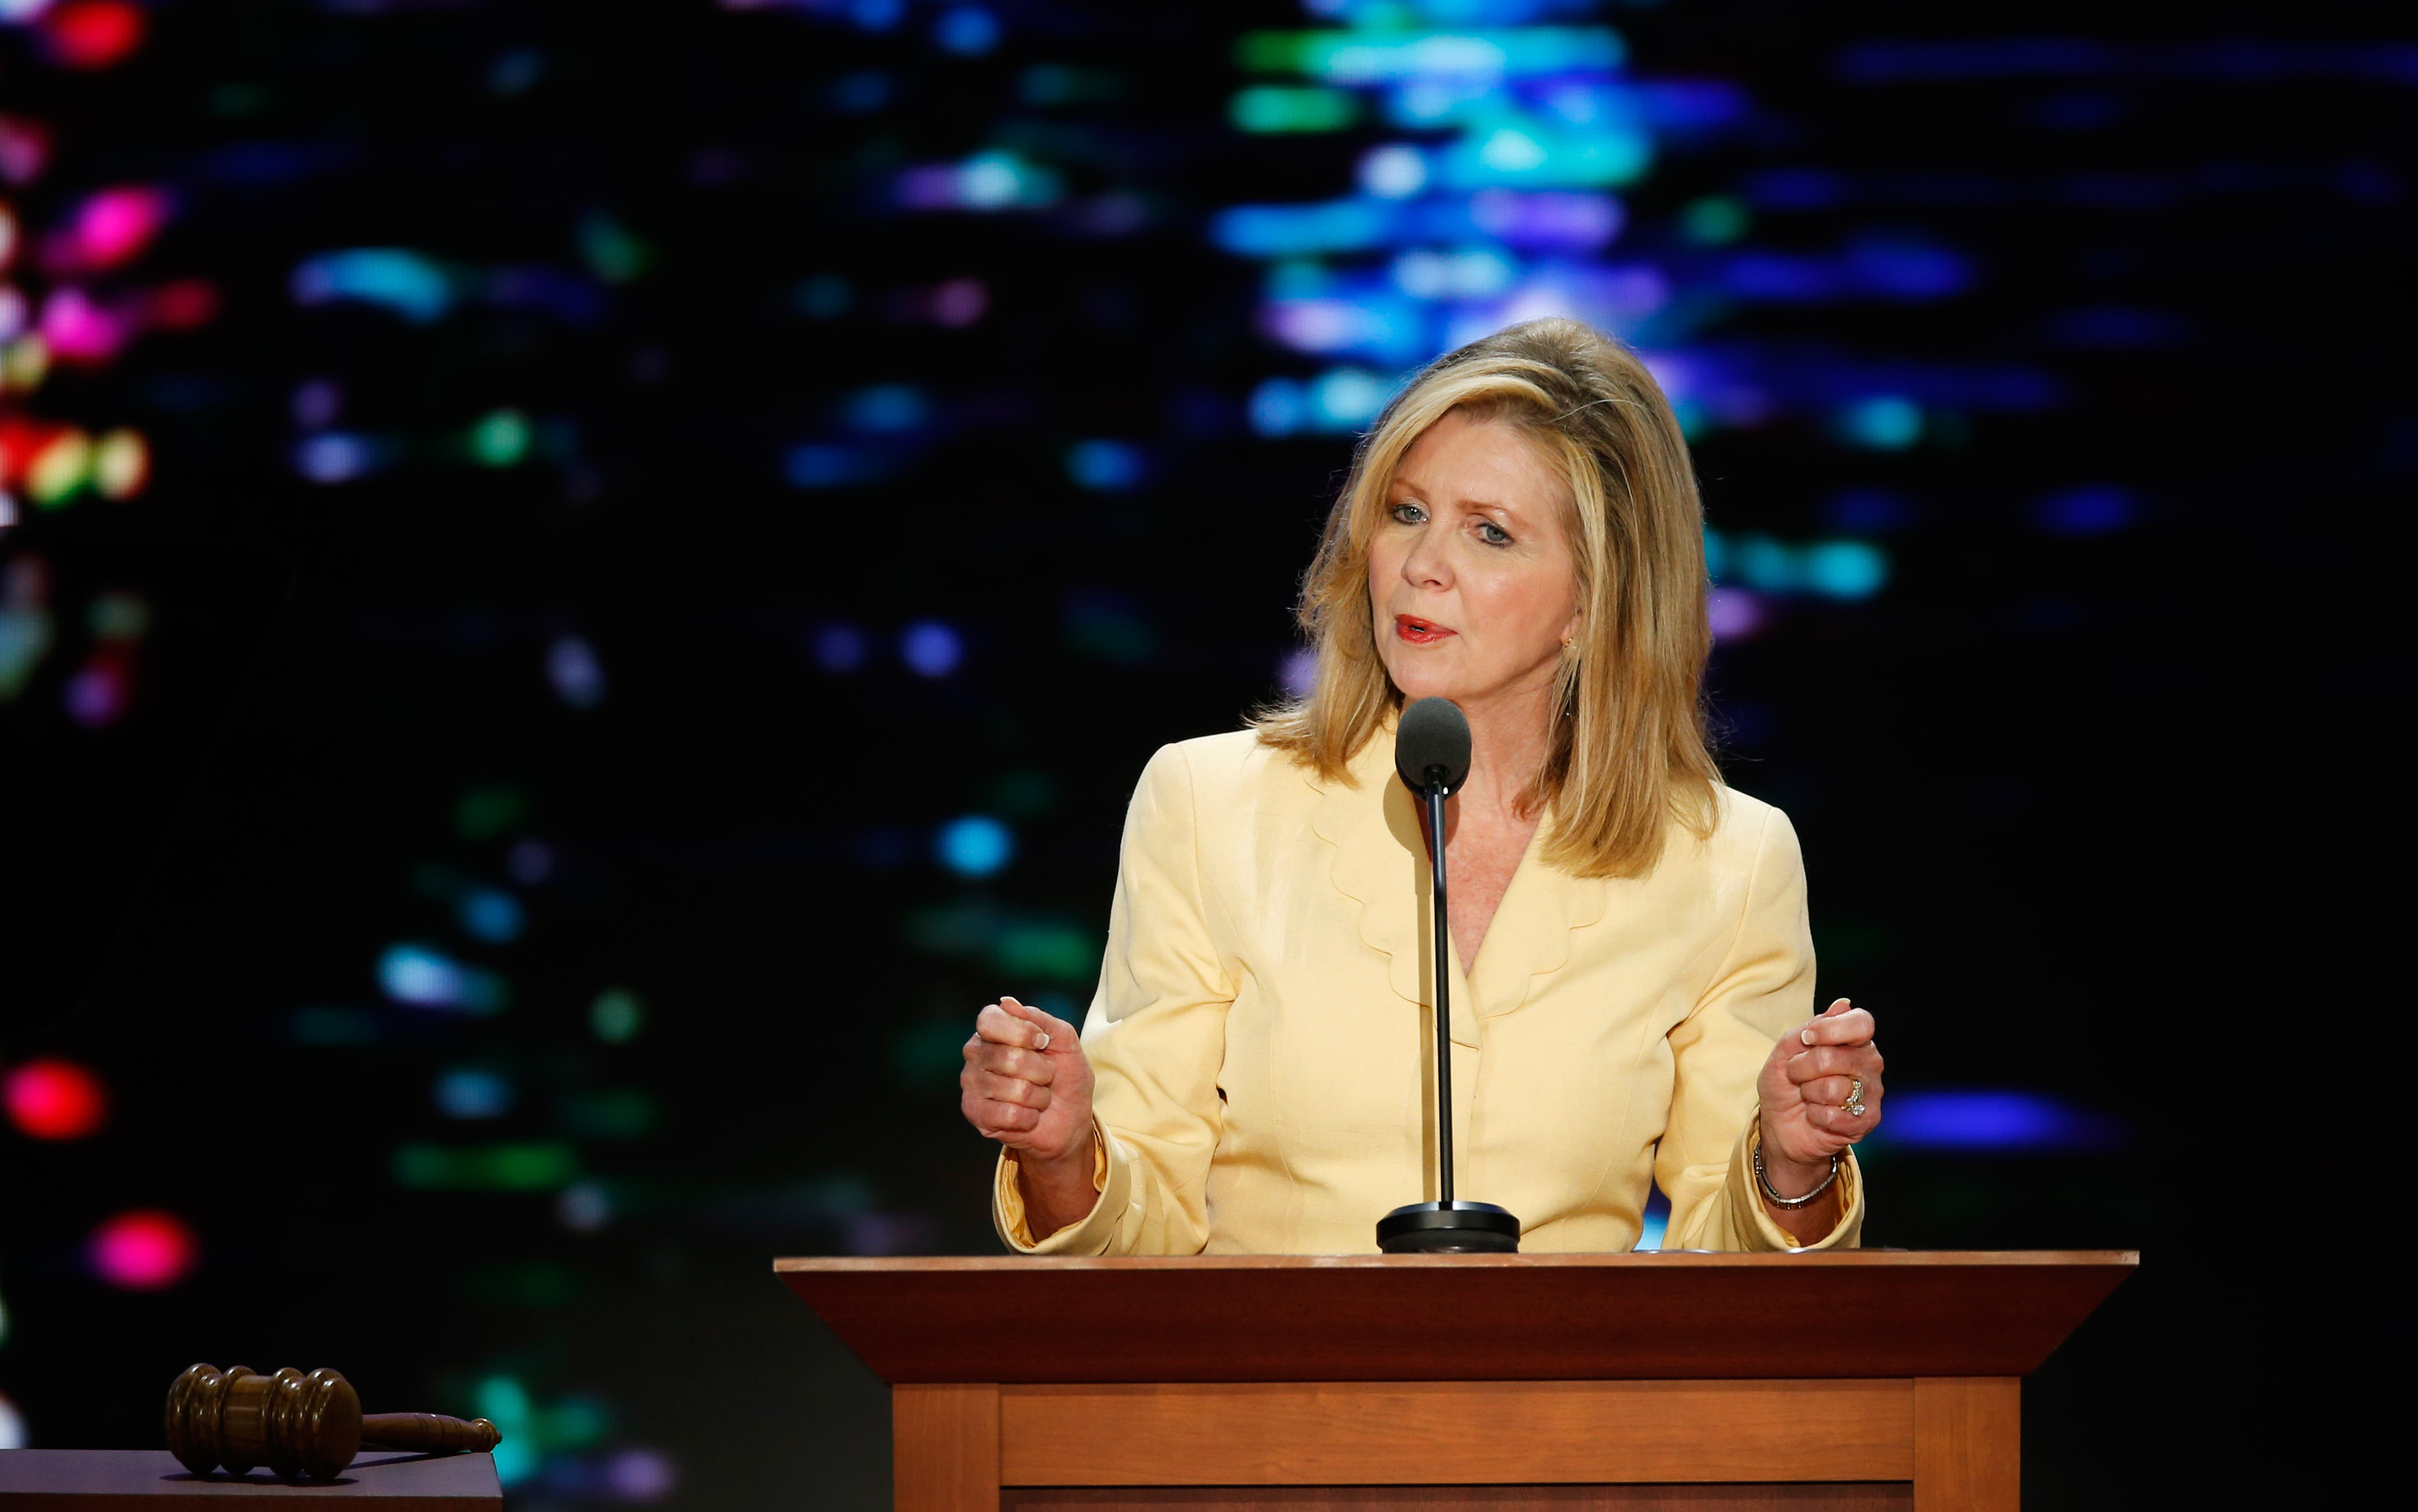 Republican National Convention Committee on Resolutions Co-Chairman U.S. Rep. Marsha Blackburn (R-TN) addresses delegates during the second session of the Republican National Convention in Tampa, Florida, August 28, 2012. REUTERS/Mike Segar